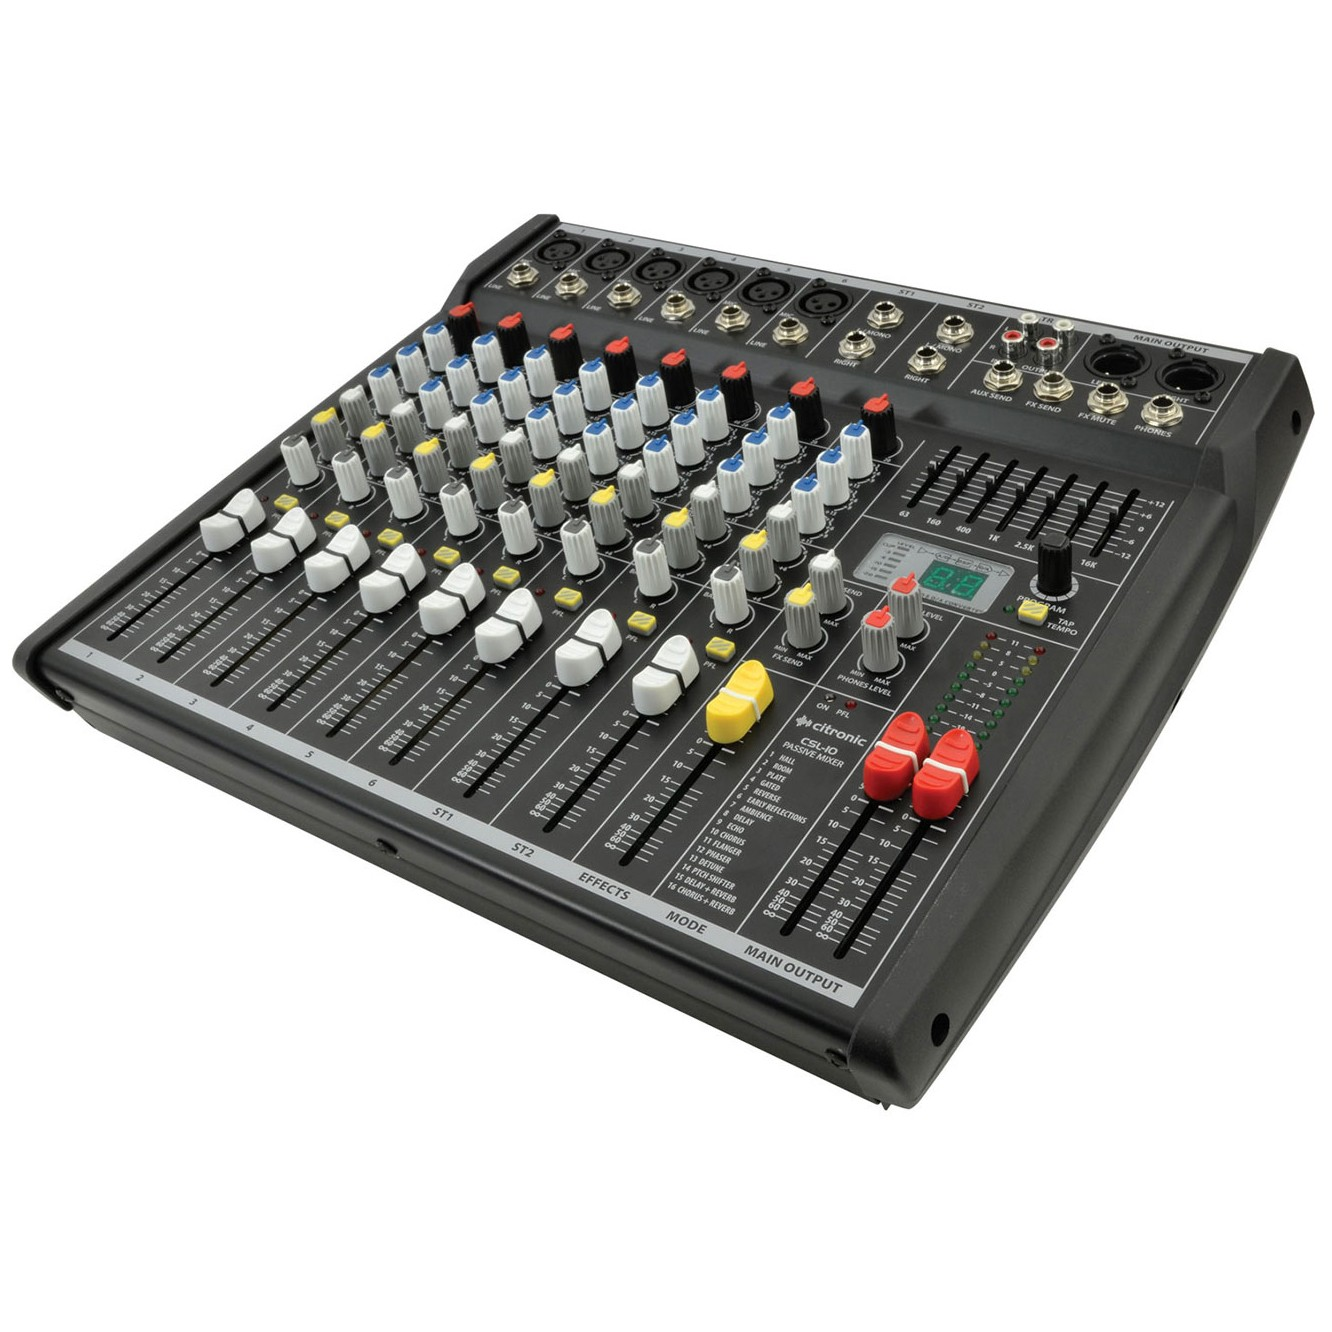 CSL-10 8 input mixer with DSP effects